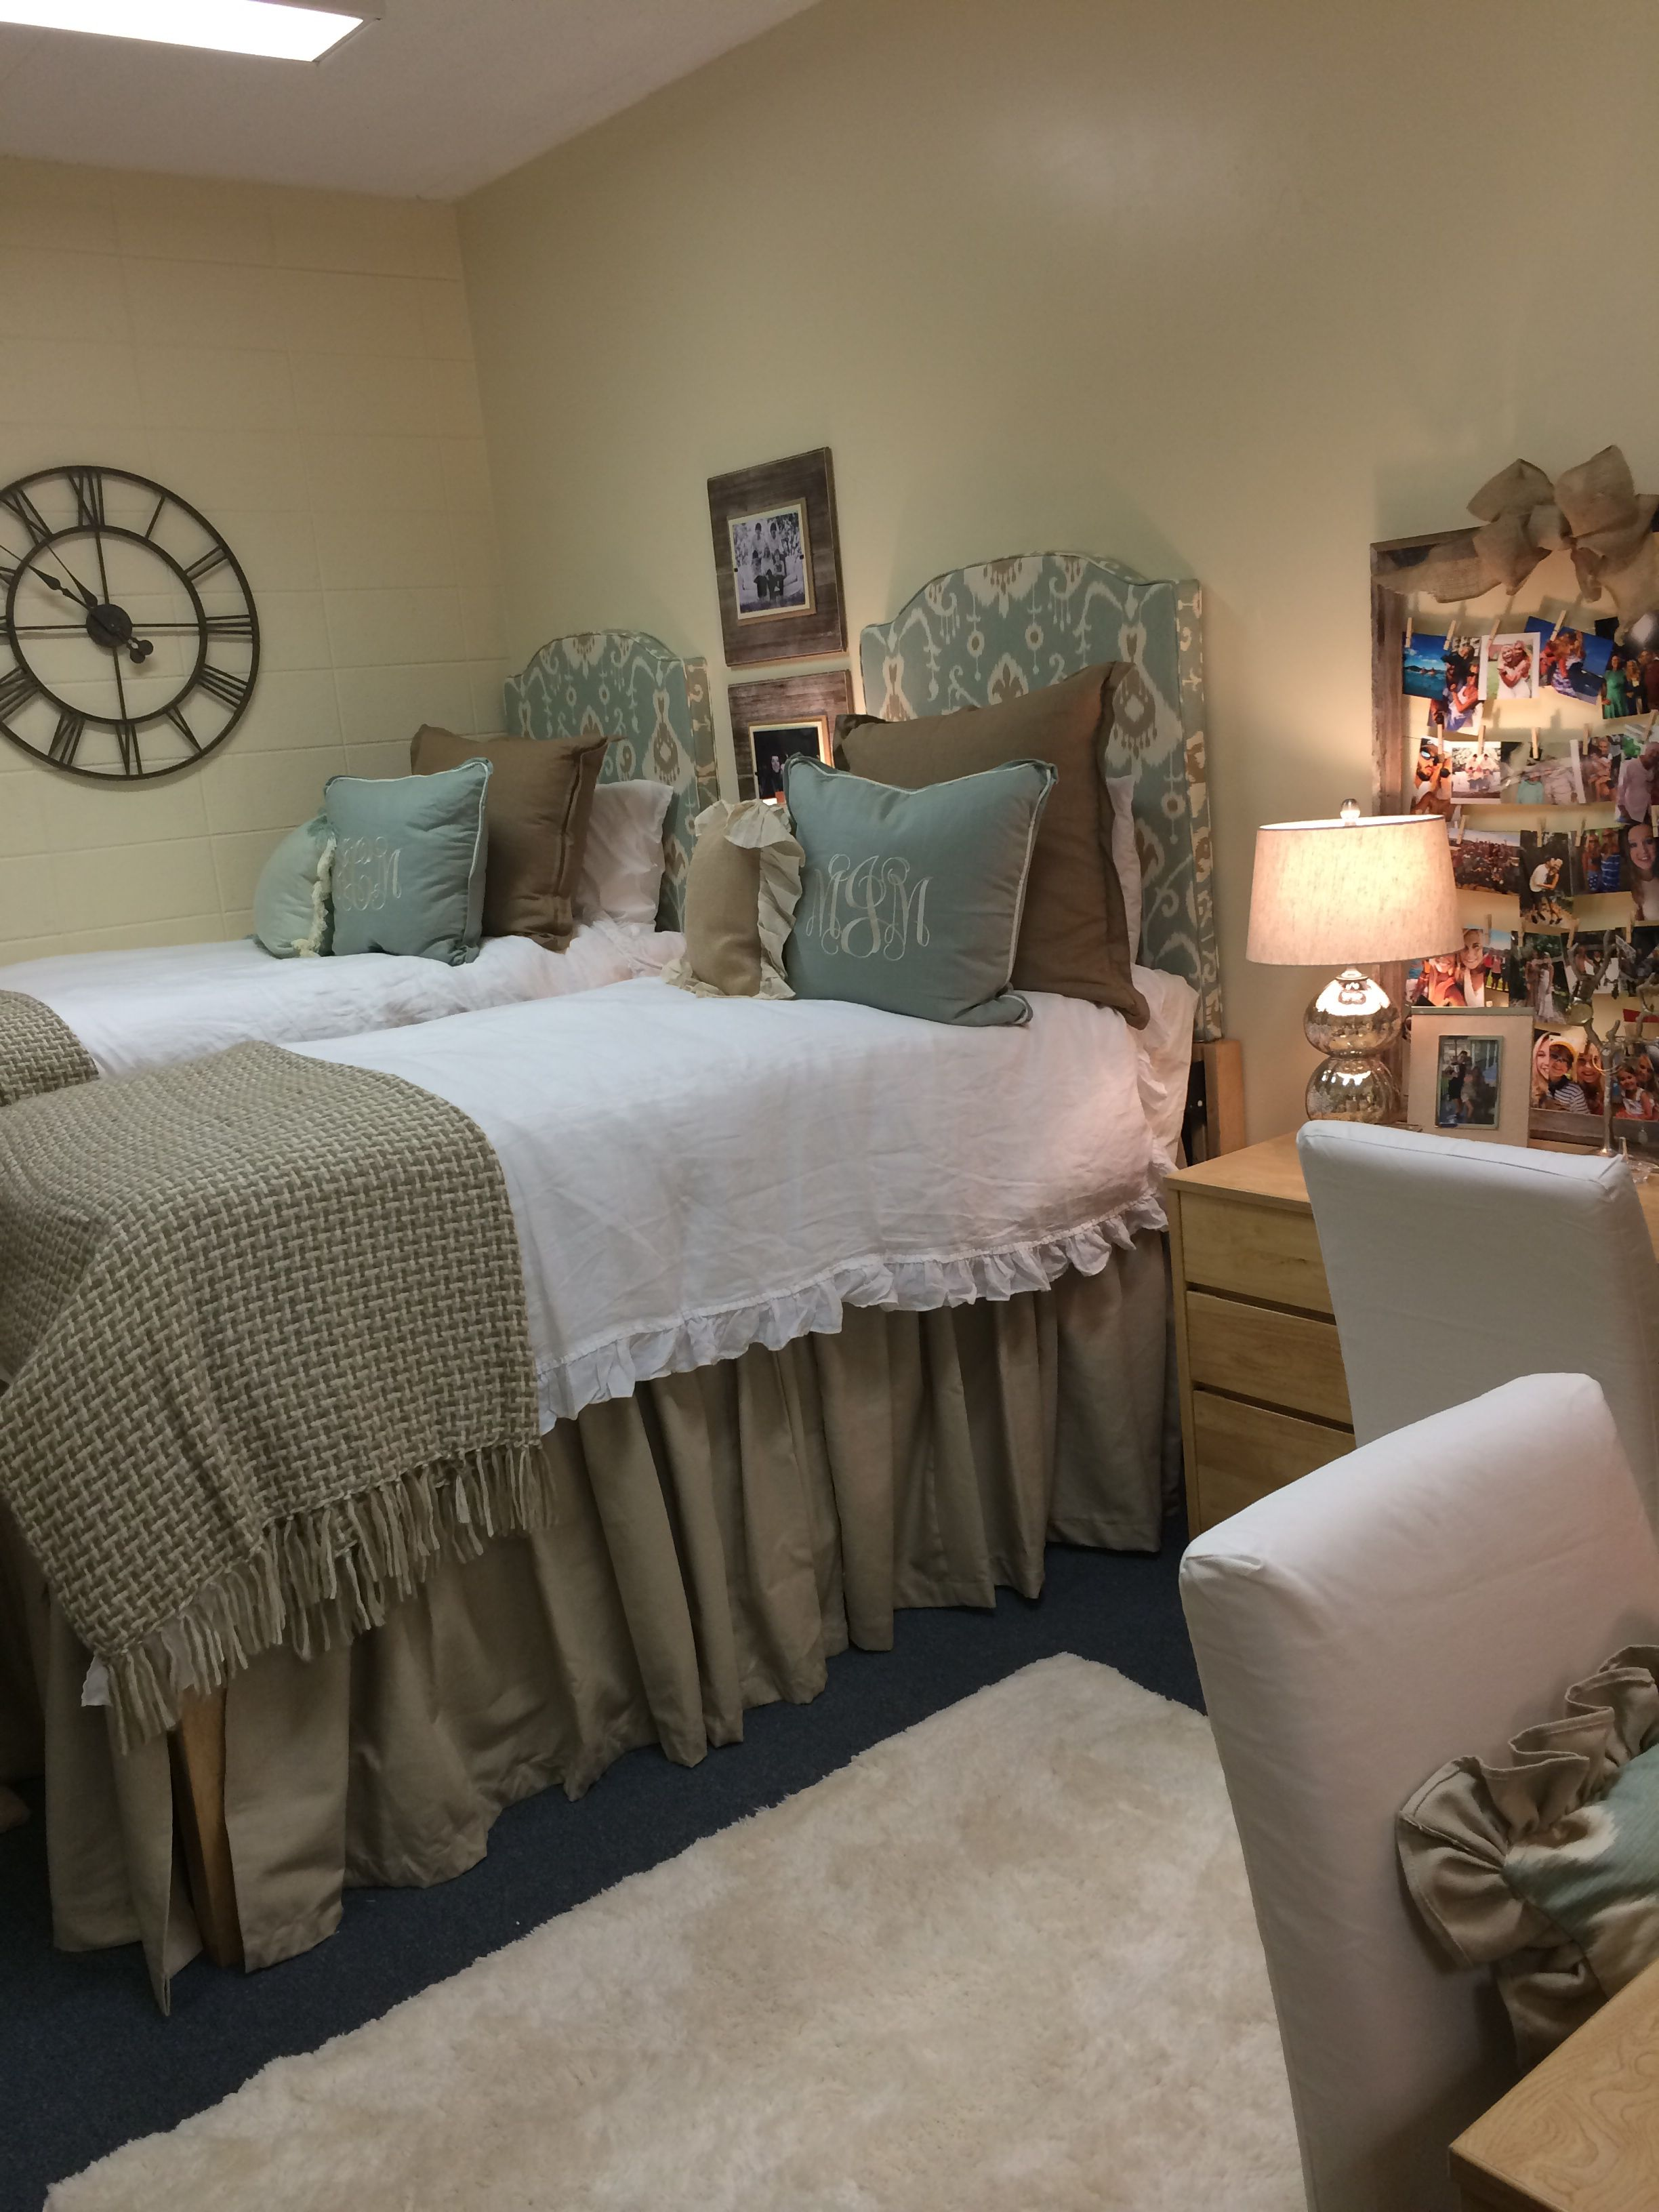 Awesome College Dorm Rooms: Girls Dorm Room, Lee University!